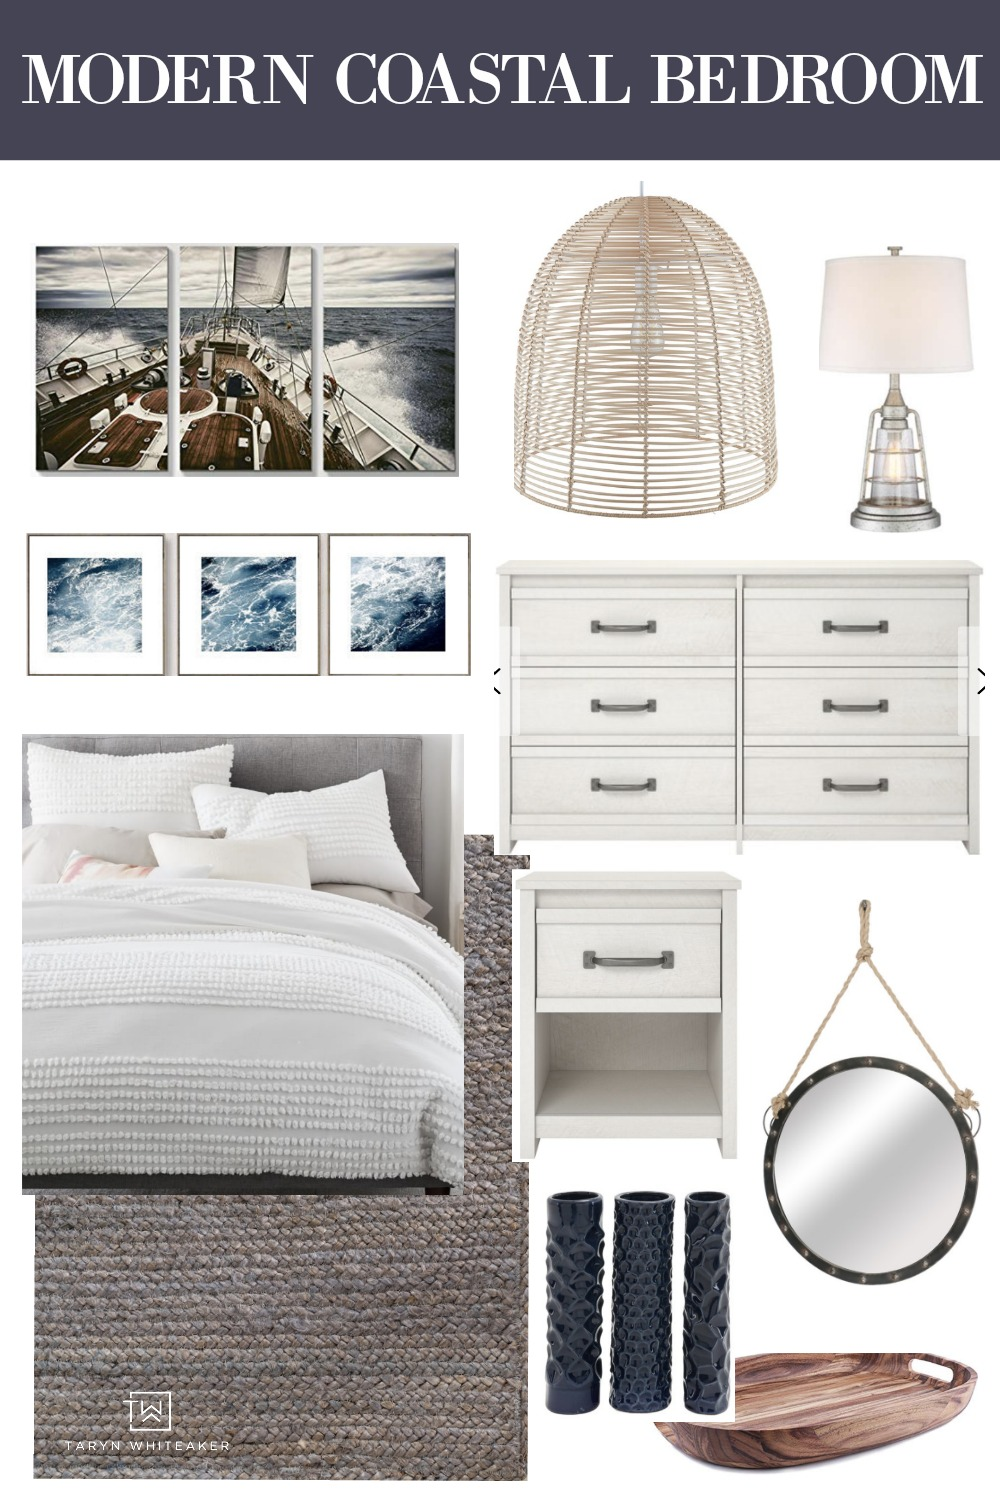 Get the look of this modern coastal bedroom! Click to get all the sources for this bright and airy coastal space.